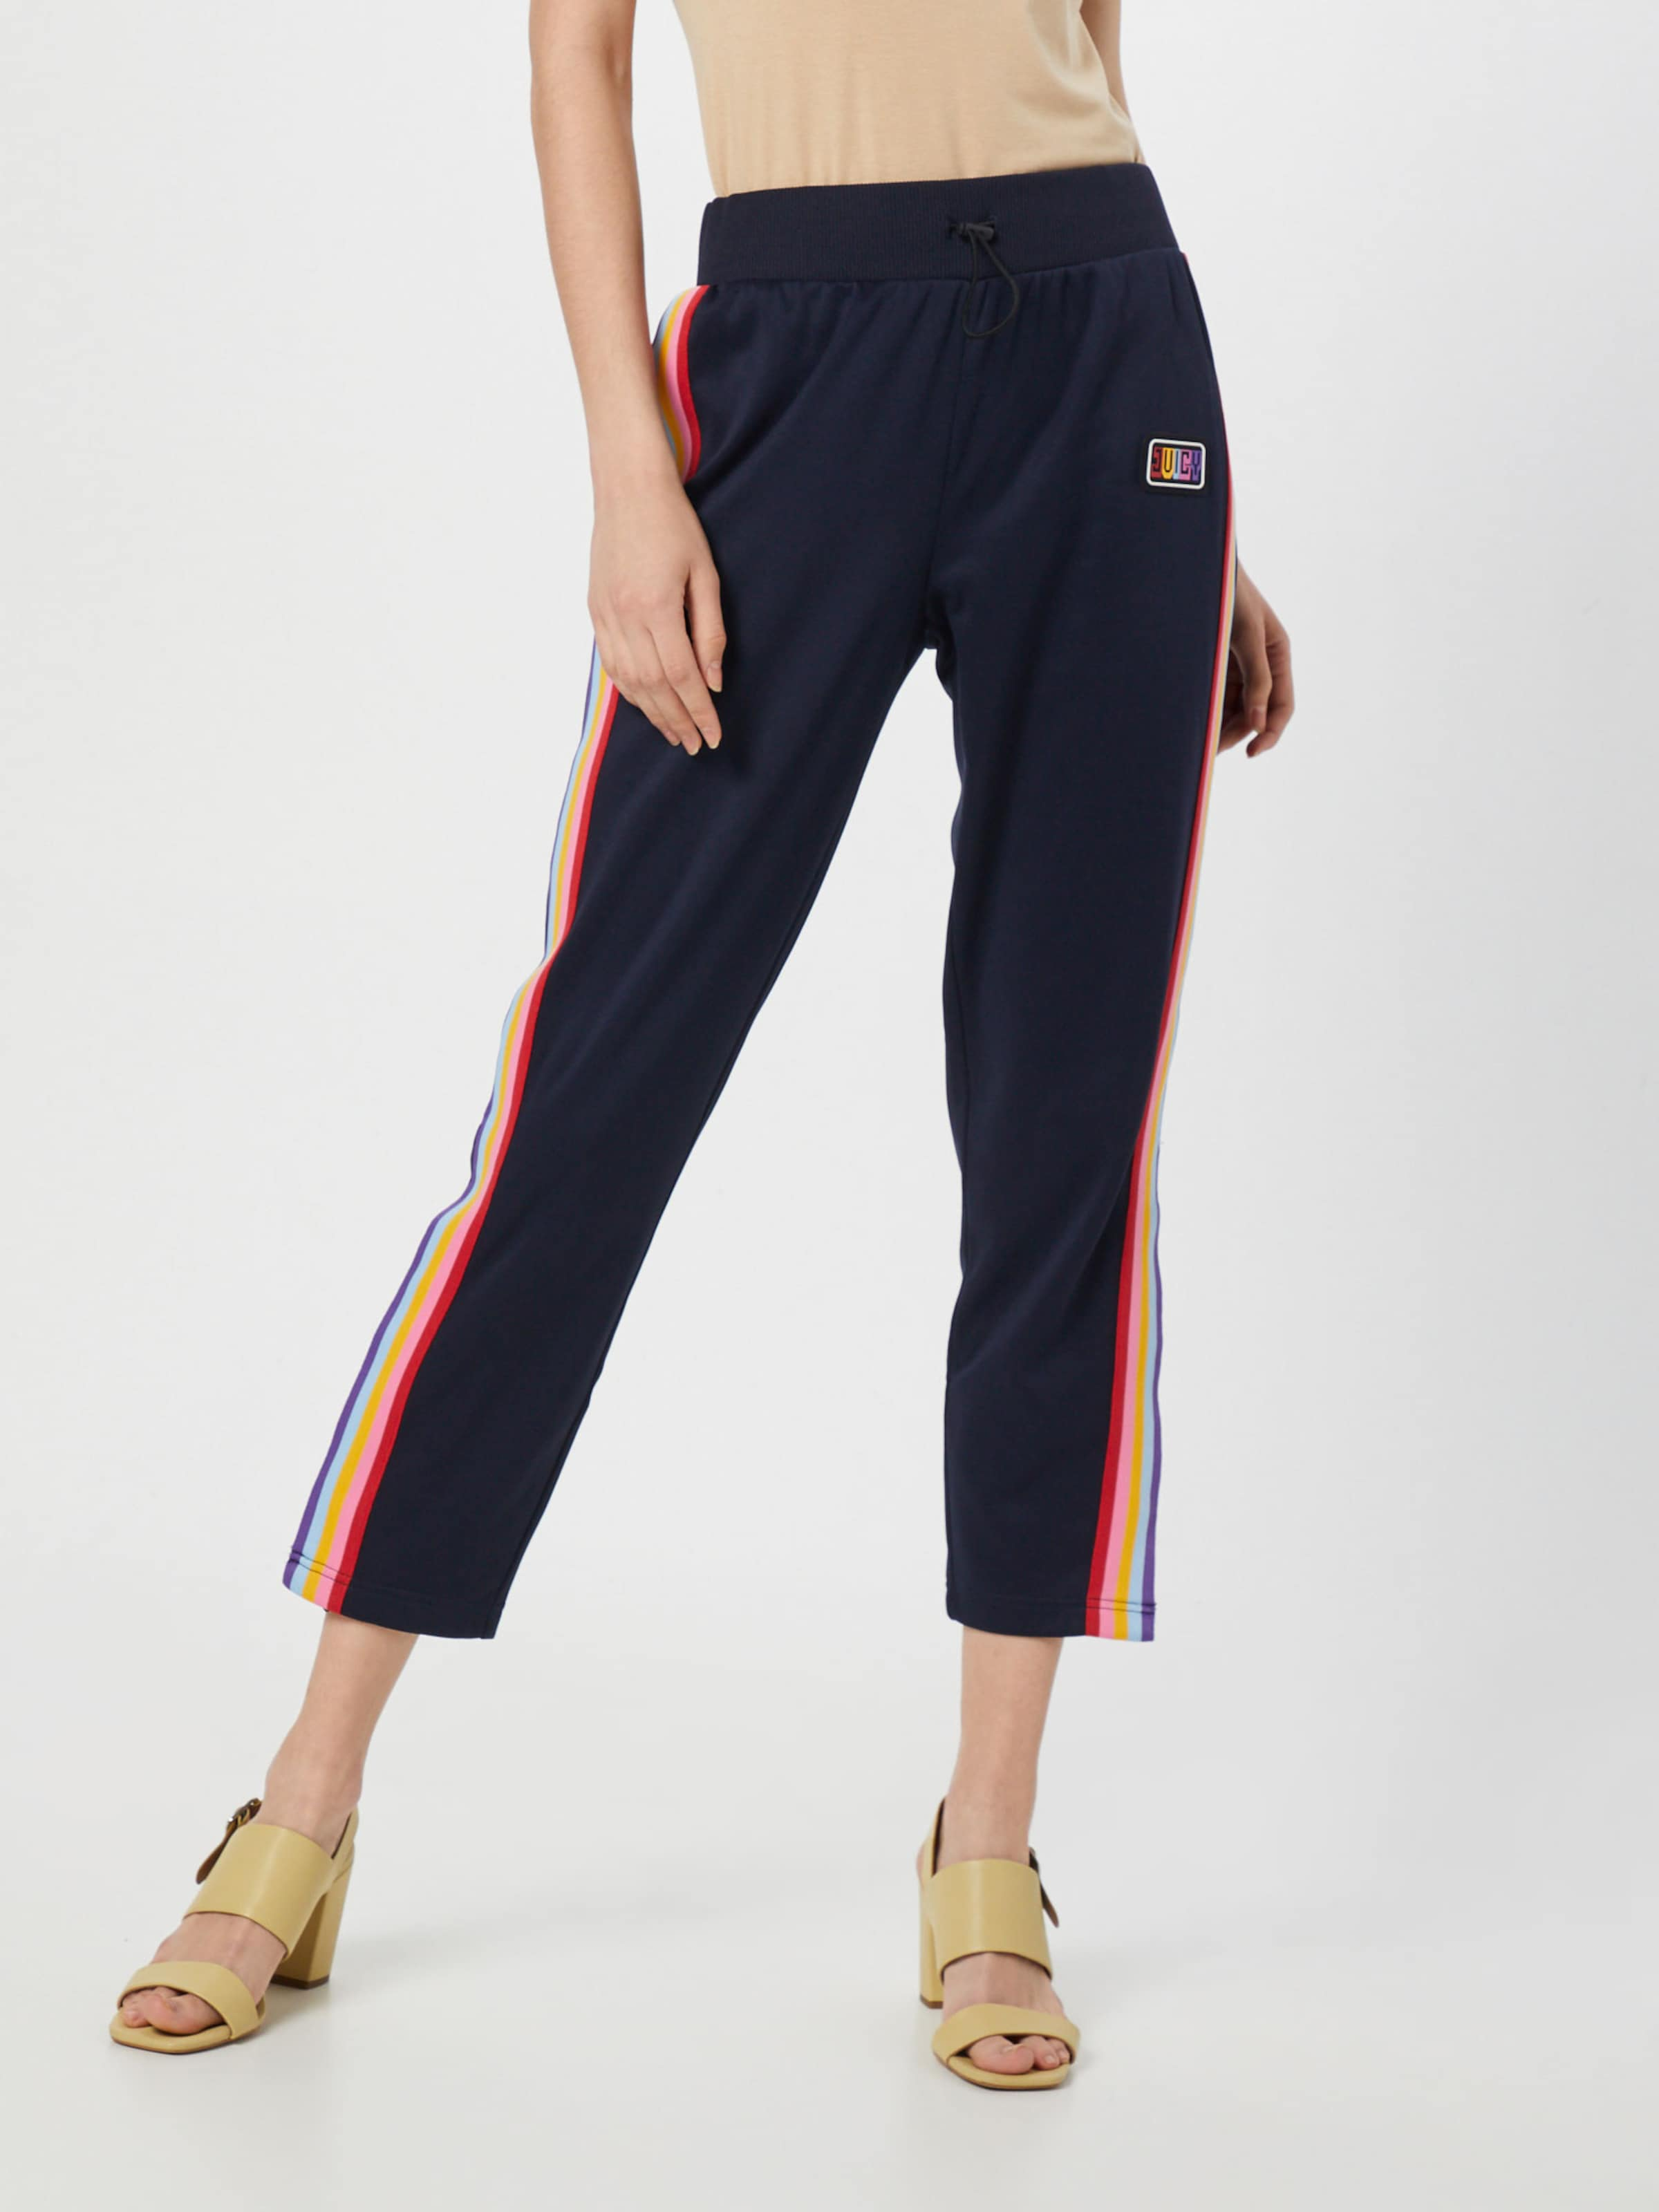 En Side Track Couleurs Couture 'rainbow Juicy Bleu Tricot By De Pantalon Pant' MarineMélange Striped W2IDE9YH